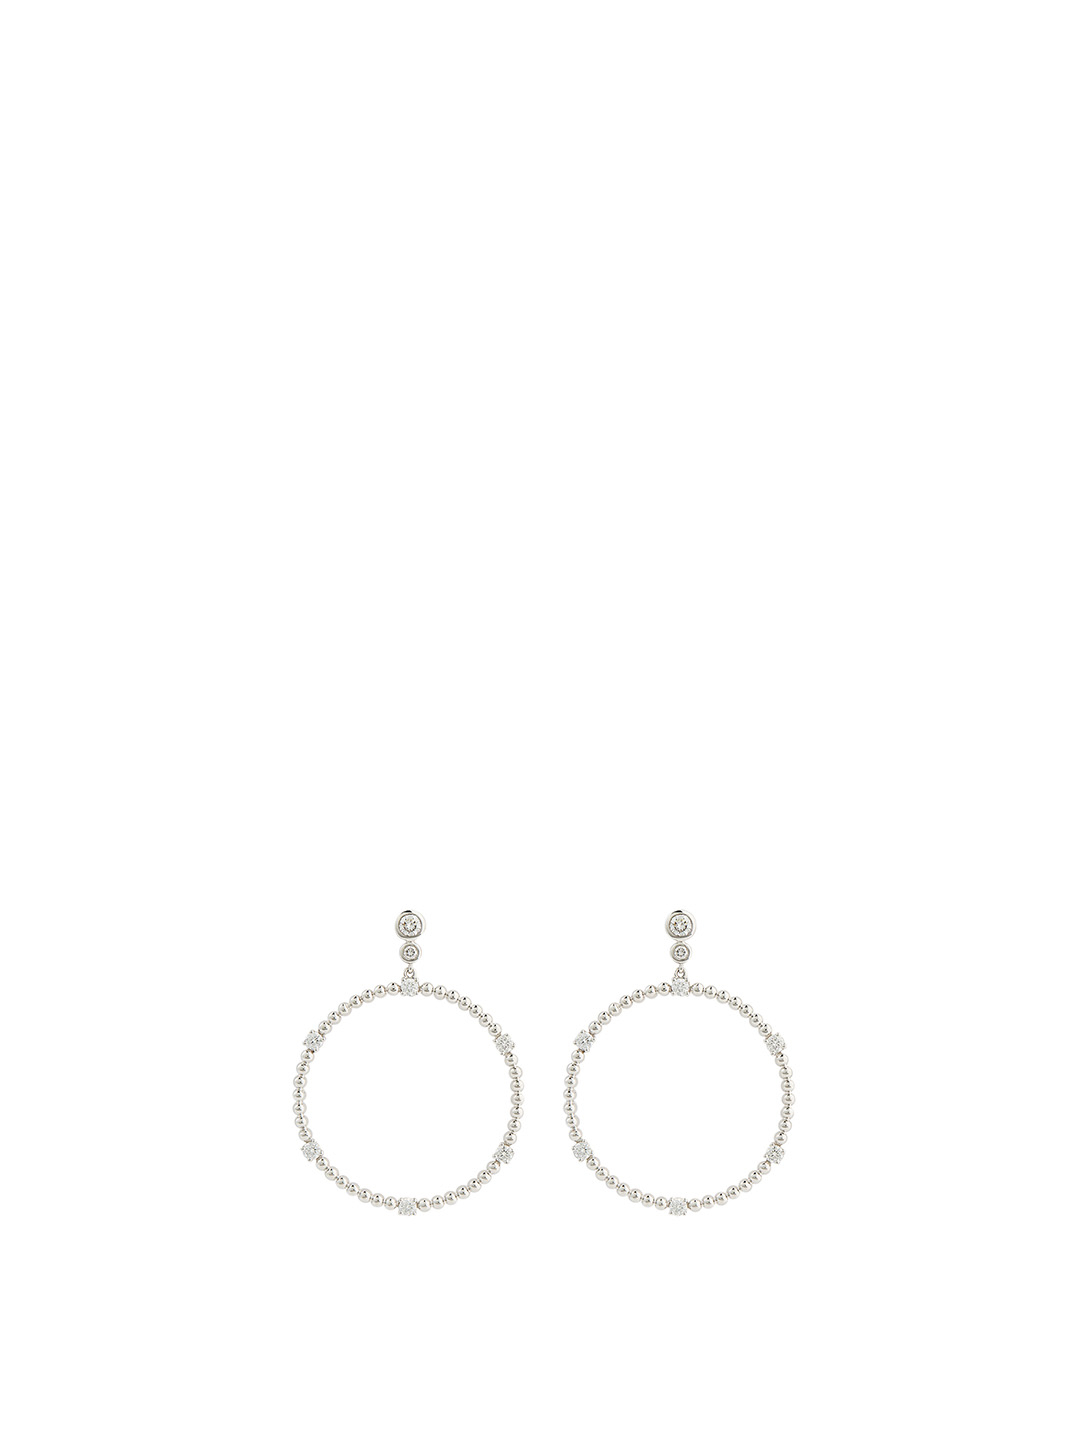 MARIA CANALE Flapper 18K White Gold Circle Dangle Earrings With Diamonds Women's Metallic